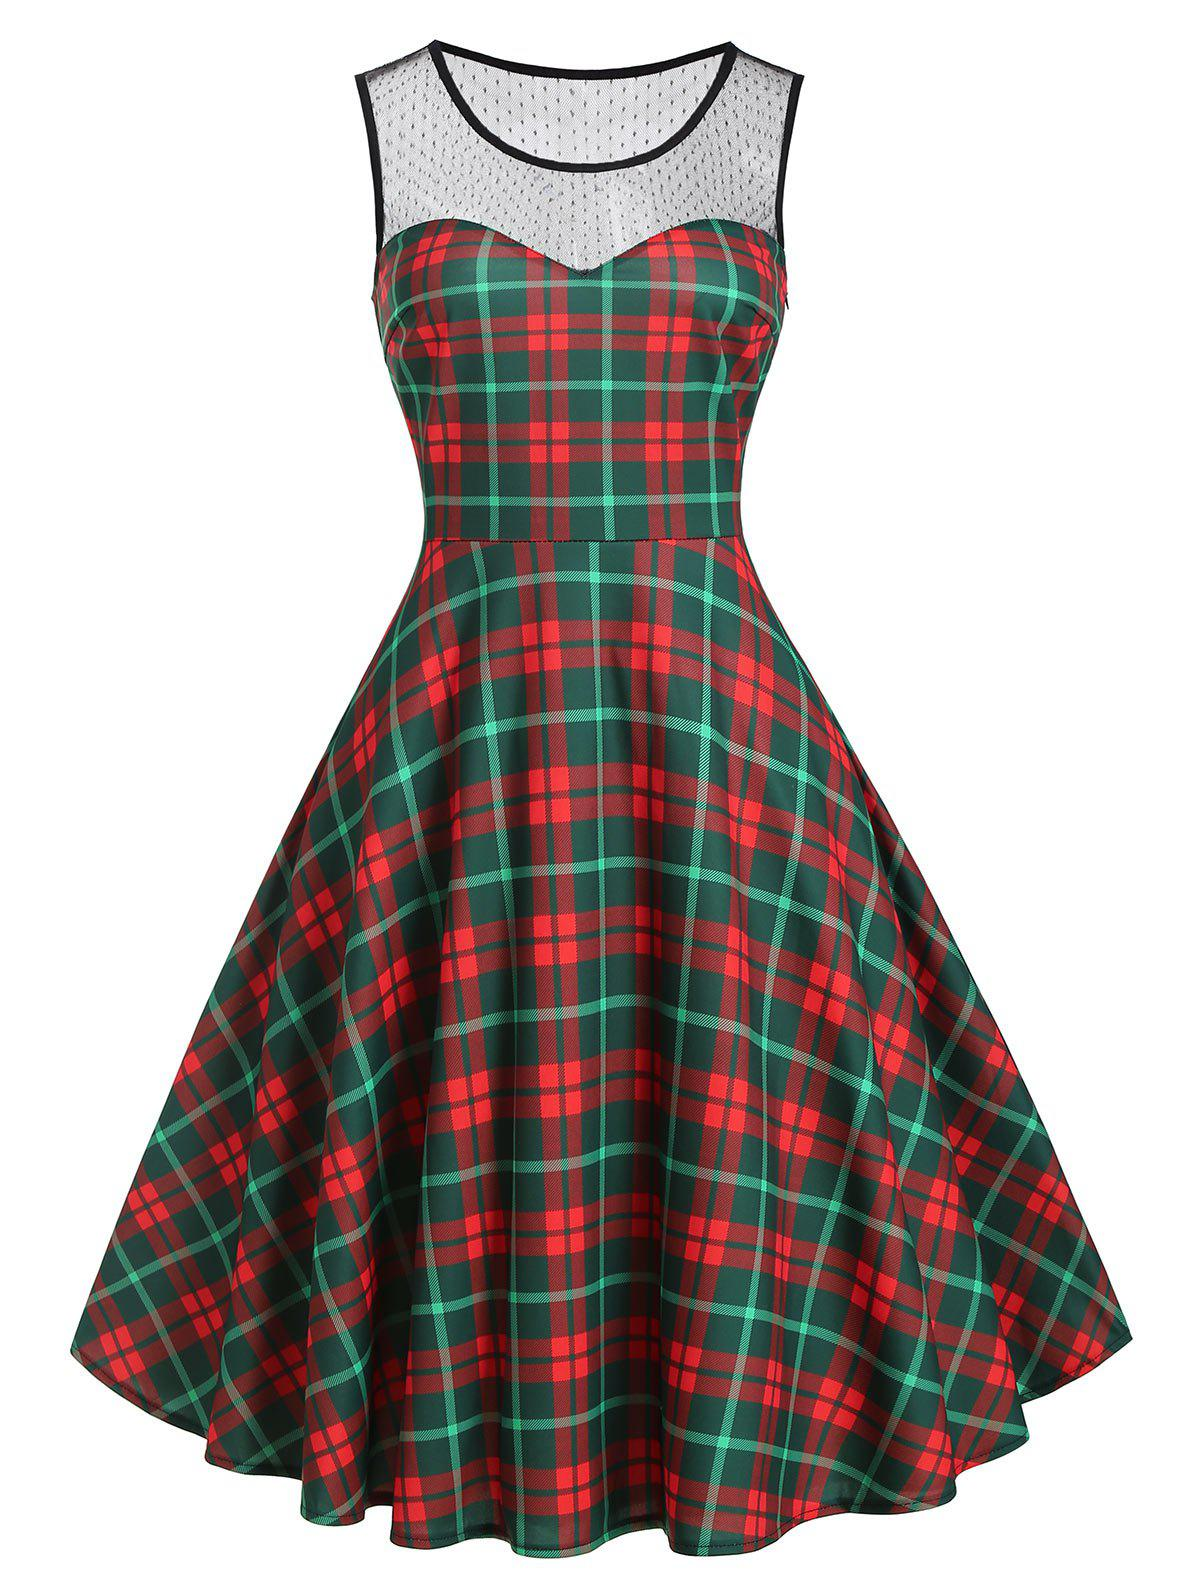 Lace Yoke Plaid Sleeveless Dress - multicolor S